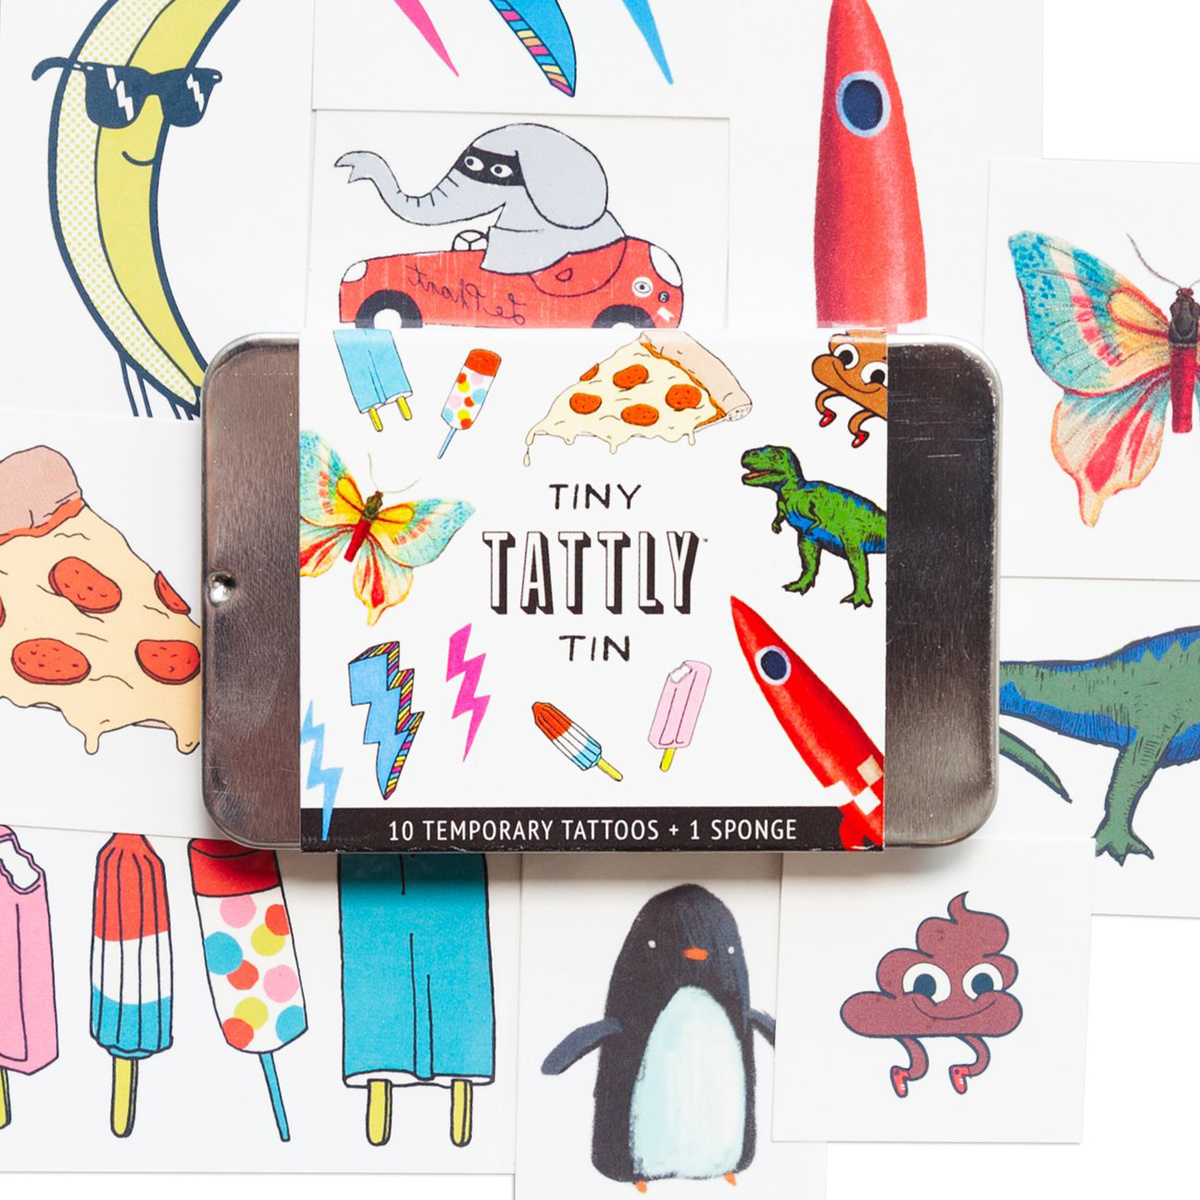 Tattly - TA Tattly -  Tiny Funner Tin of Mini Tattoos